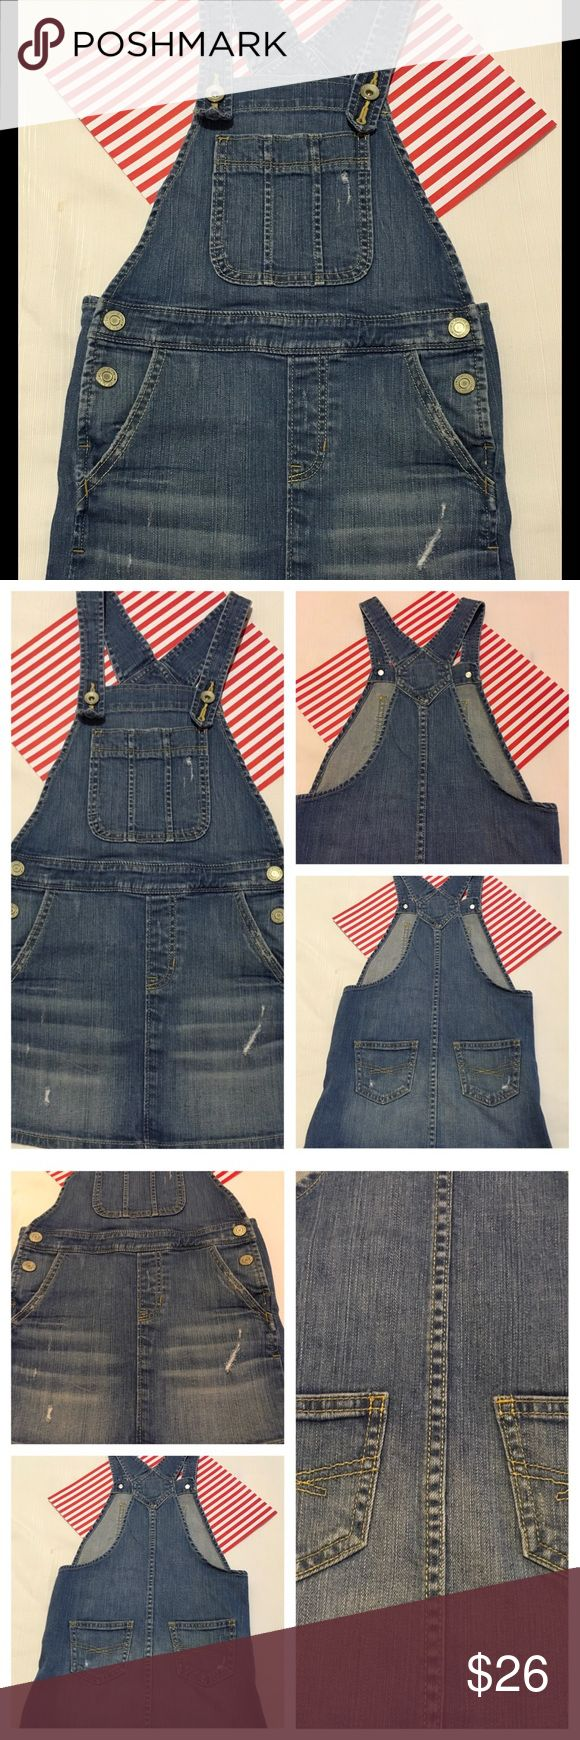 💕Gap Kids rip denim skirt overalls size Small💕 Gap Kids rip denim skirt overalls girls size SMALL used condition no tears or stains Smoke free Home &pet💕👌🏻 Gap Kids Bottoms Skirts